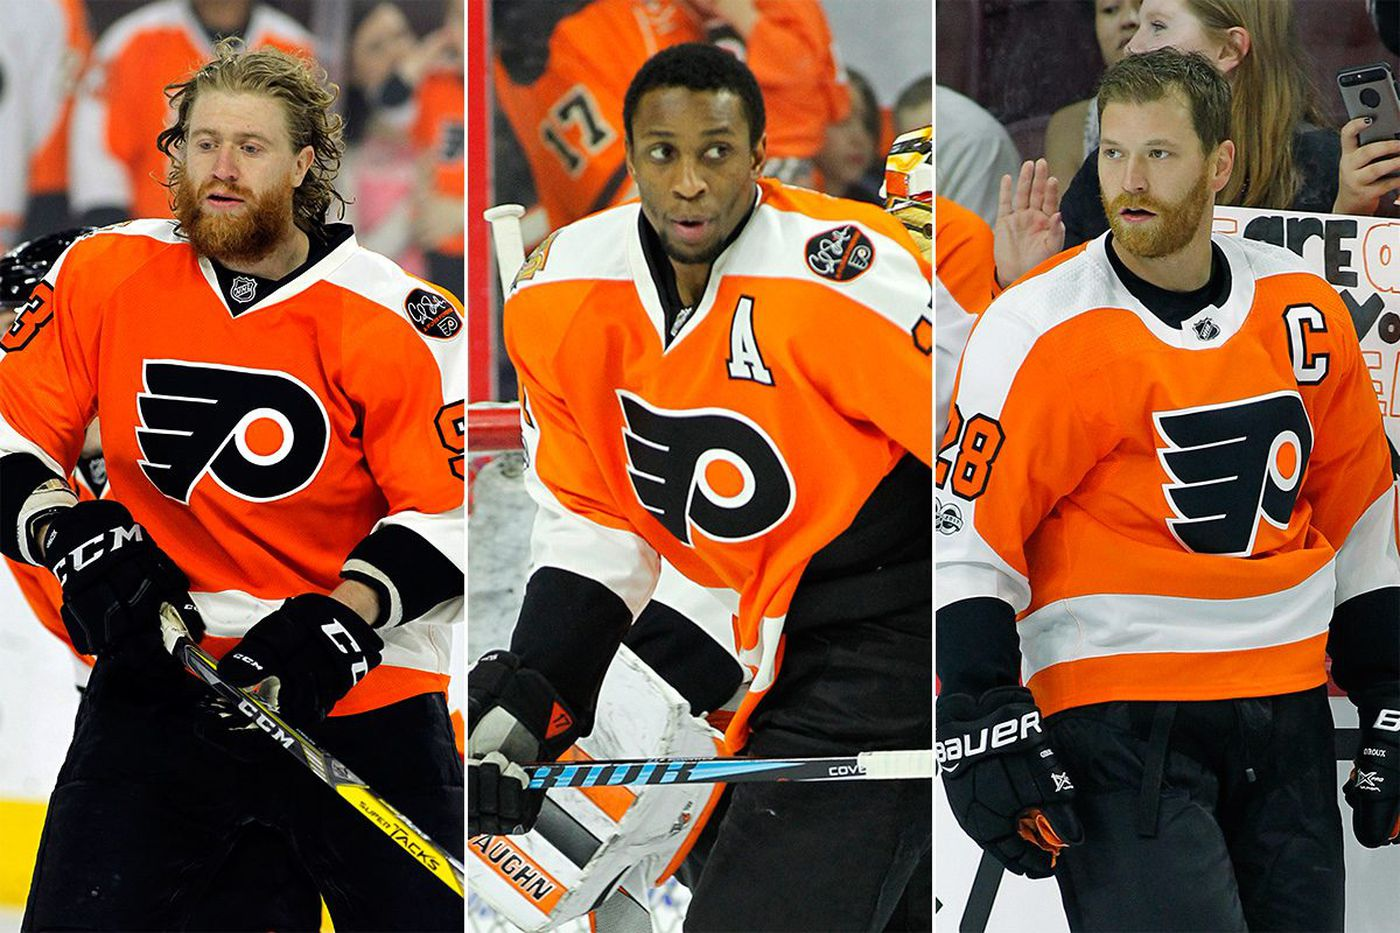 The bell tolls for Flyers' Core 3